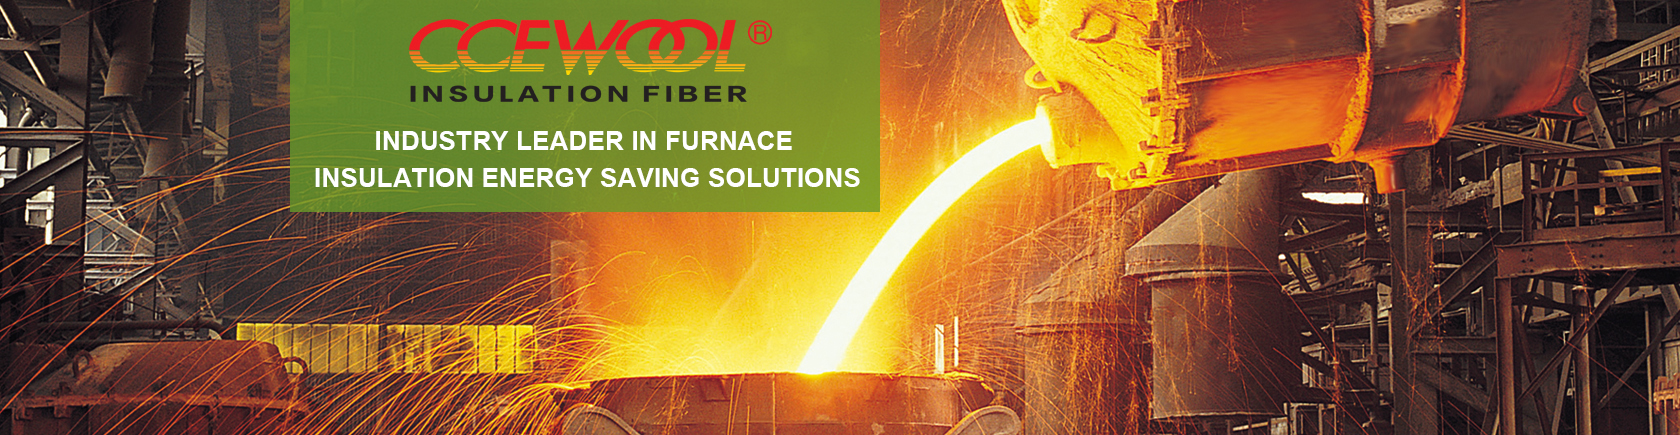 ramic Fiber Energy-Saving Solutions